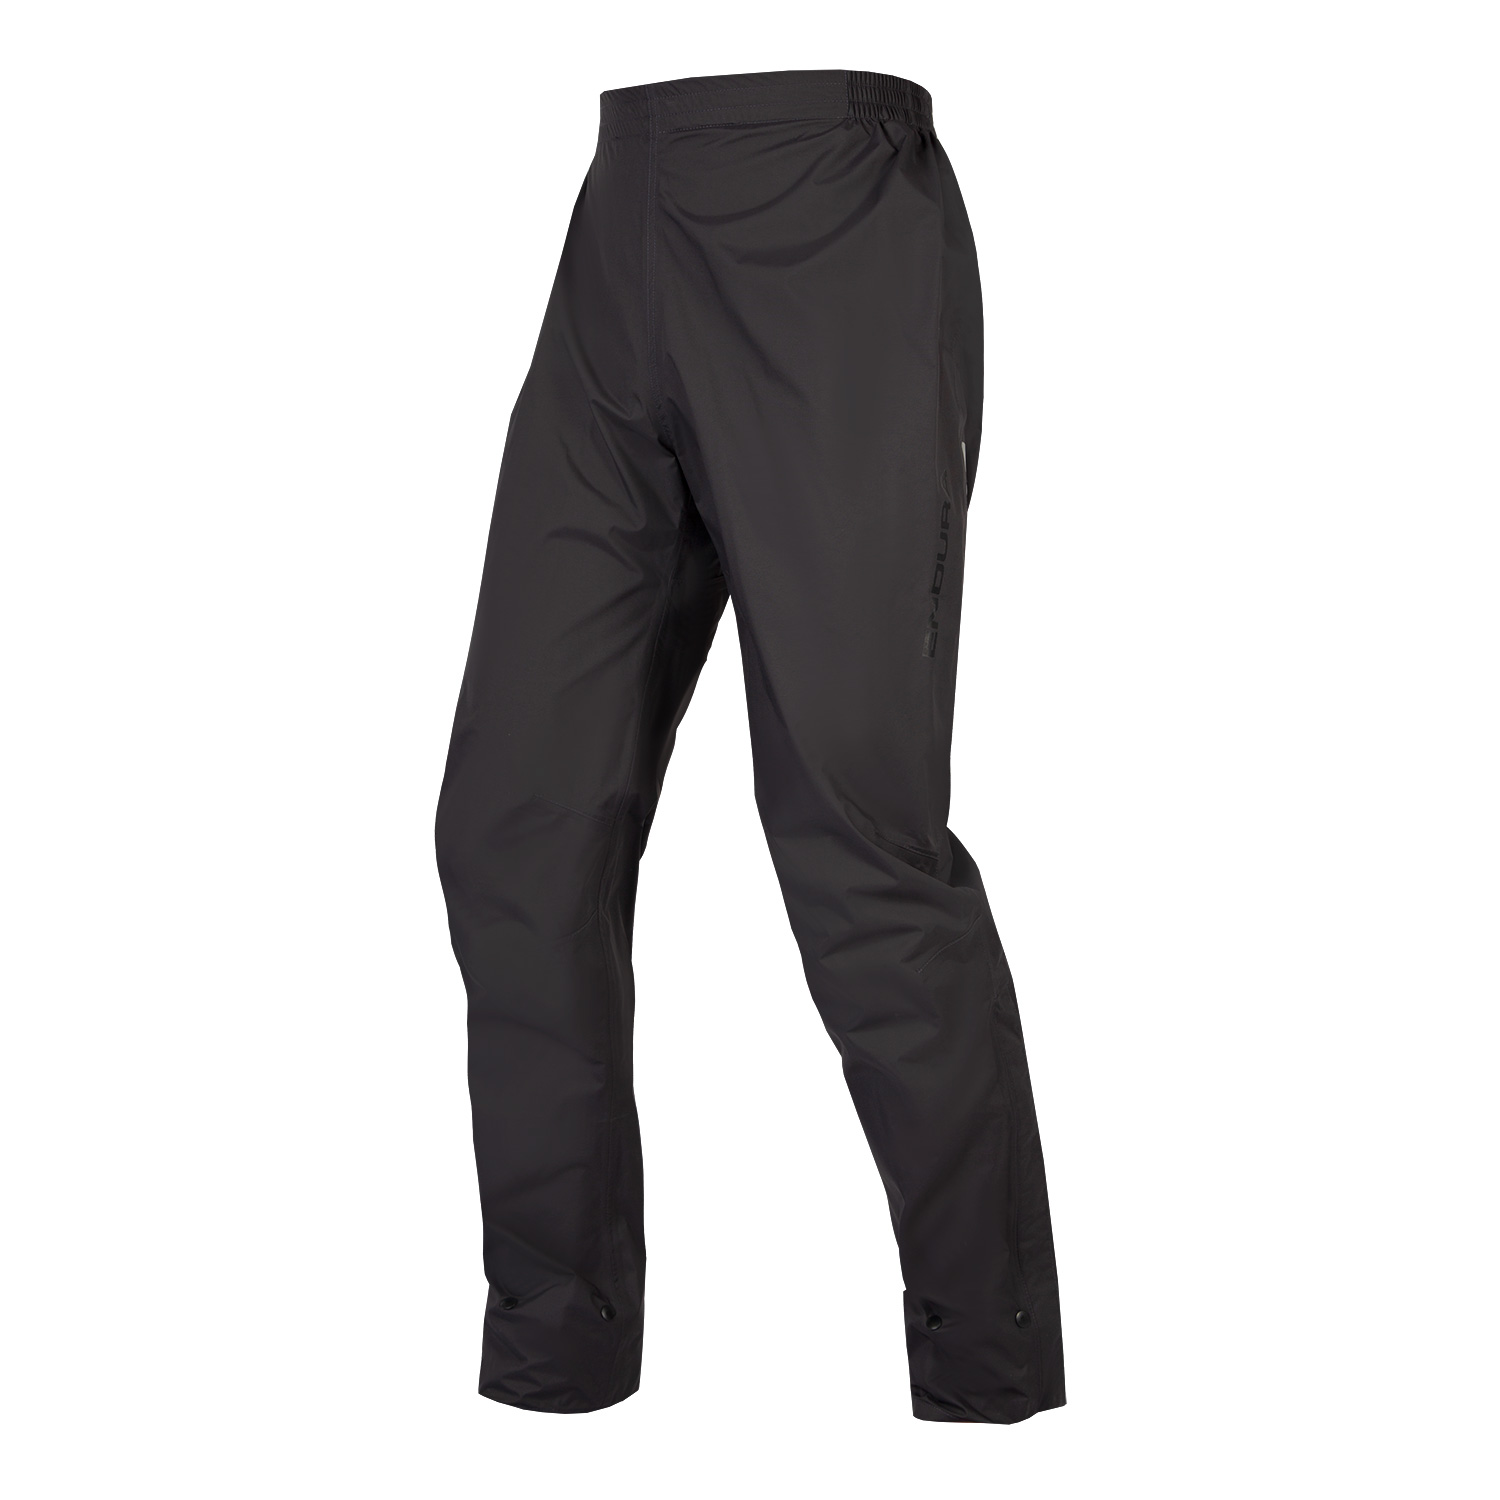 Endura Urban Luminite Waterproof Pants